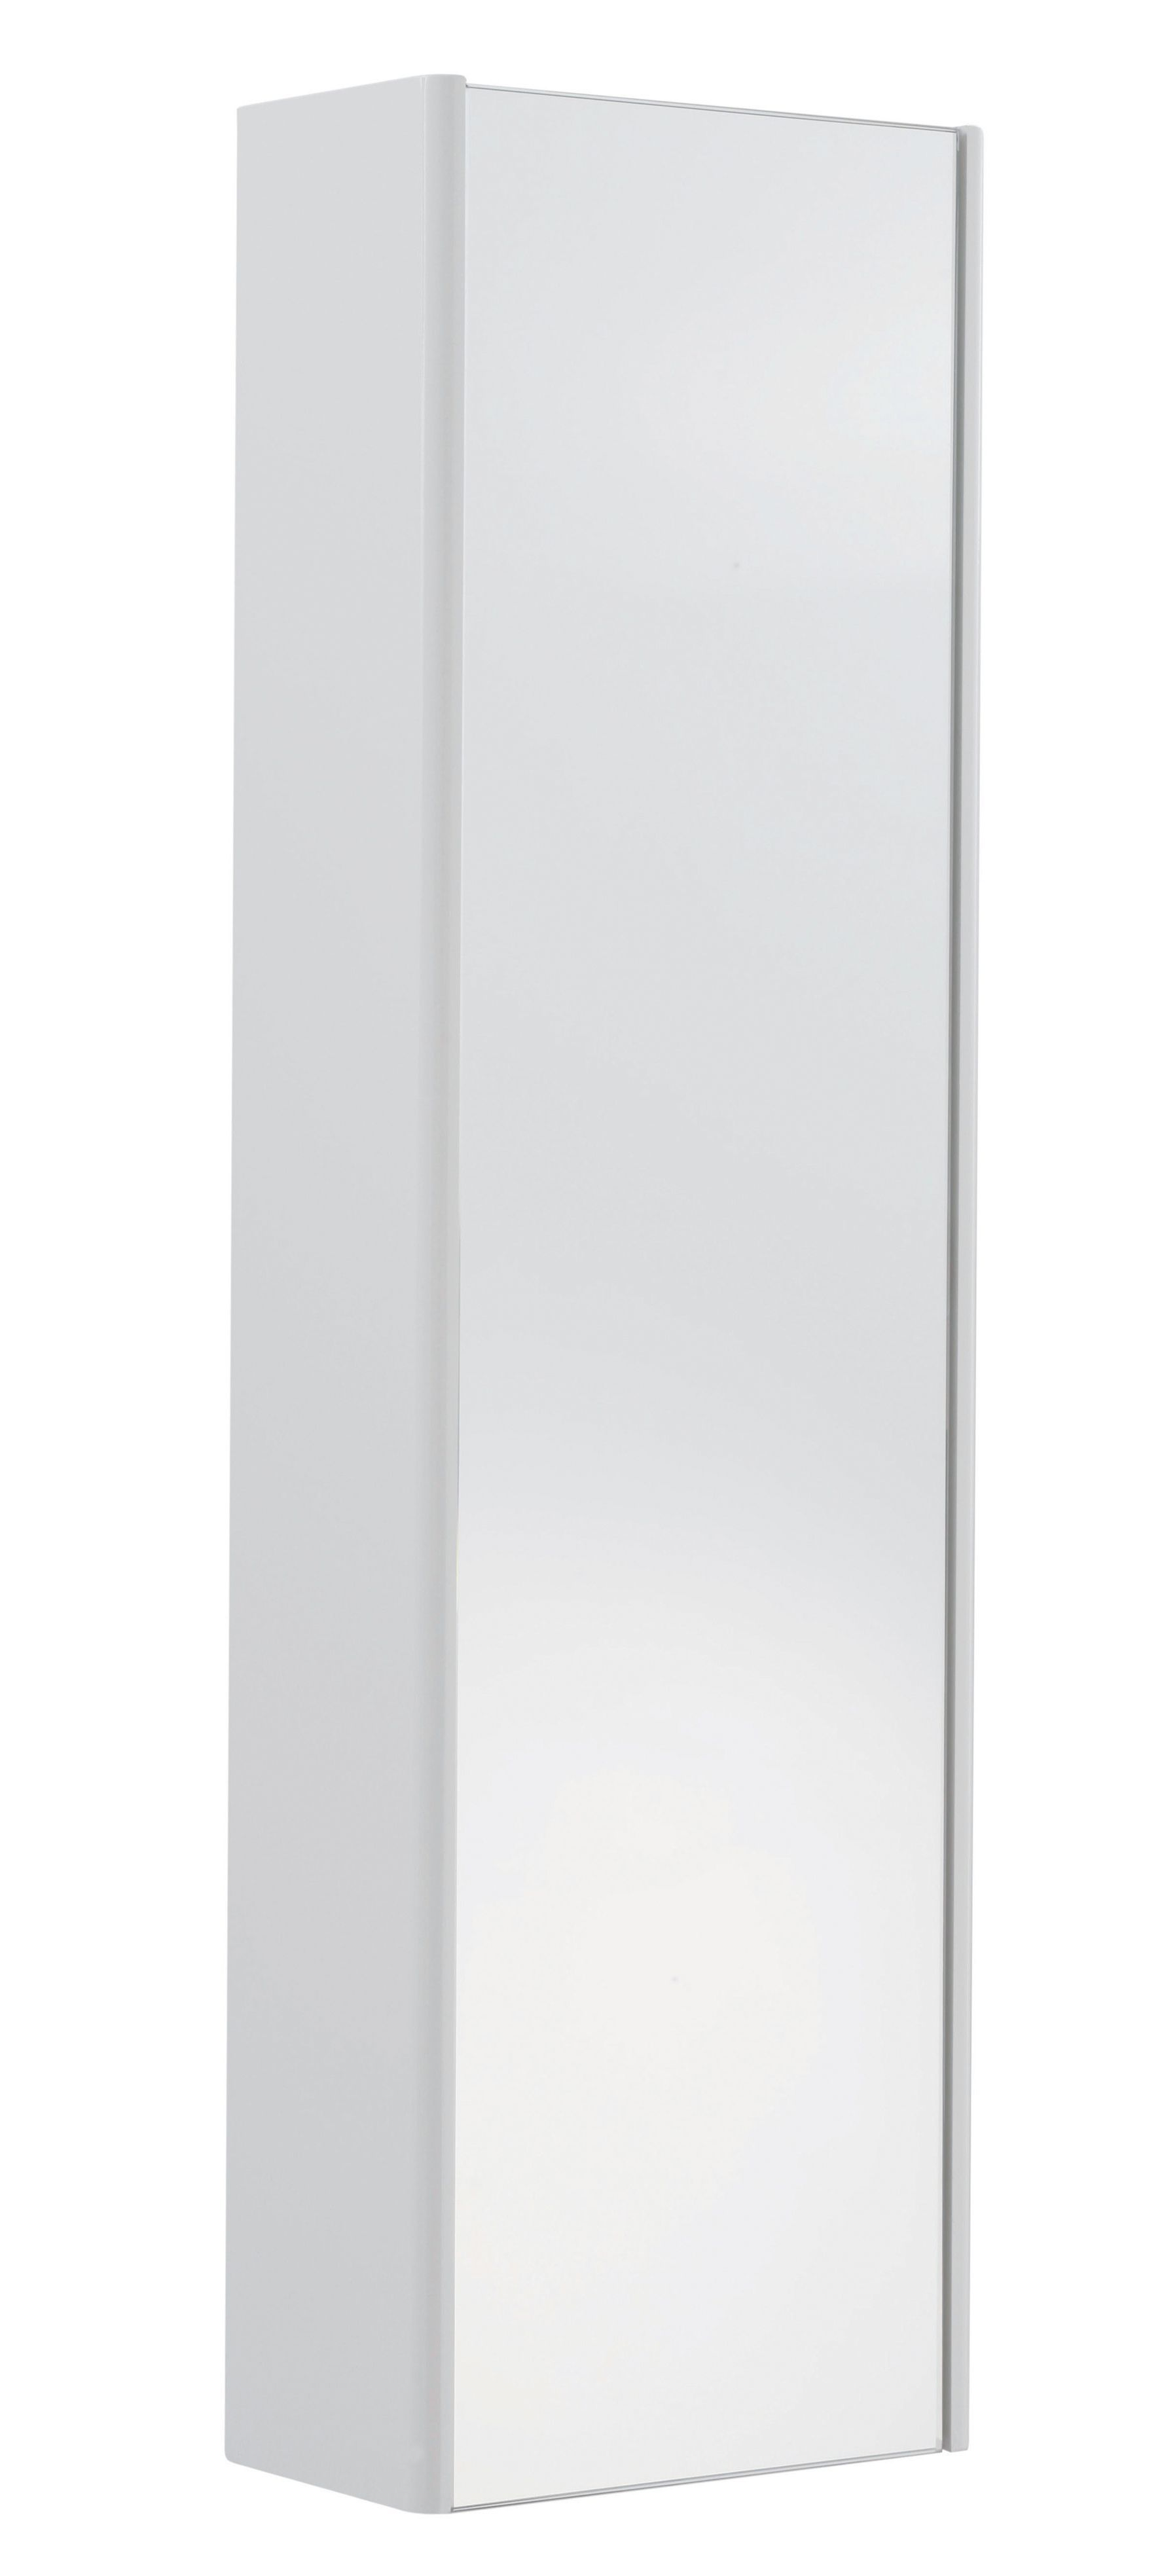 Cooke & Lewis Tobique Single Door White Tall Mirror Cabinet ...